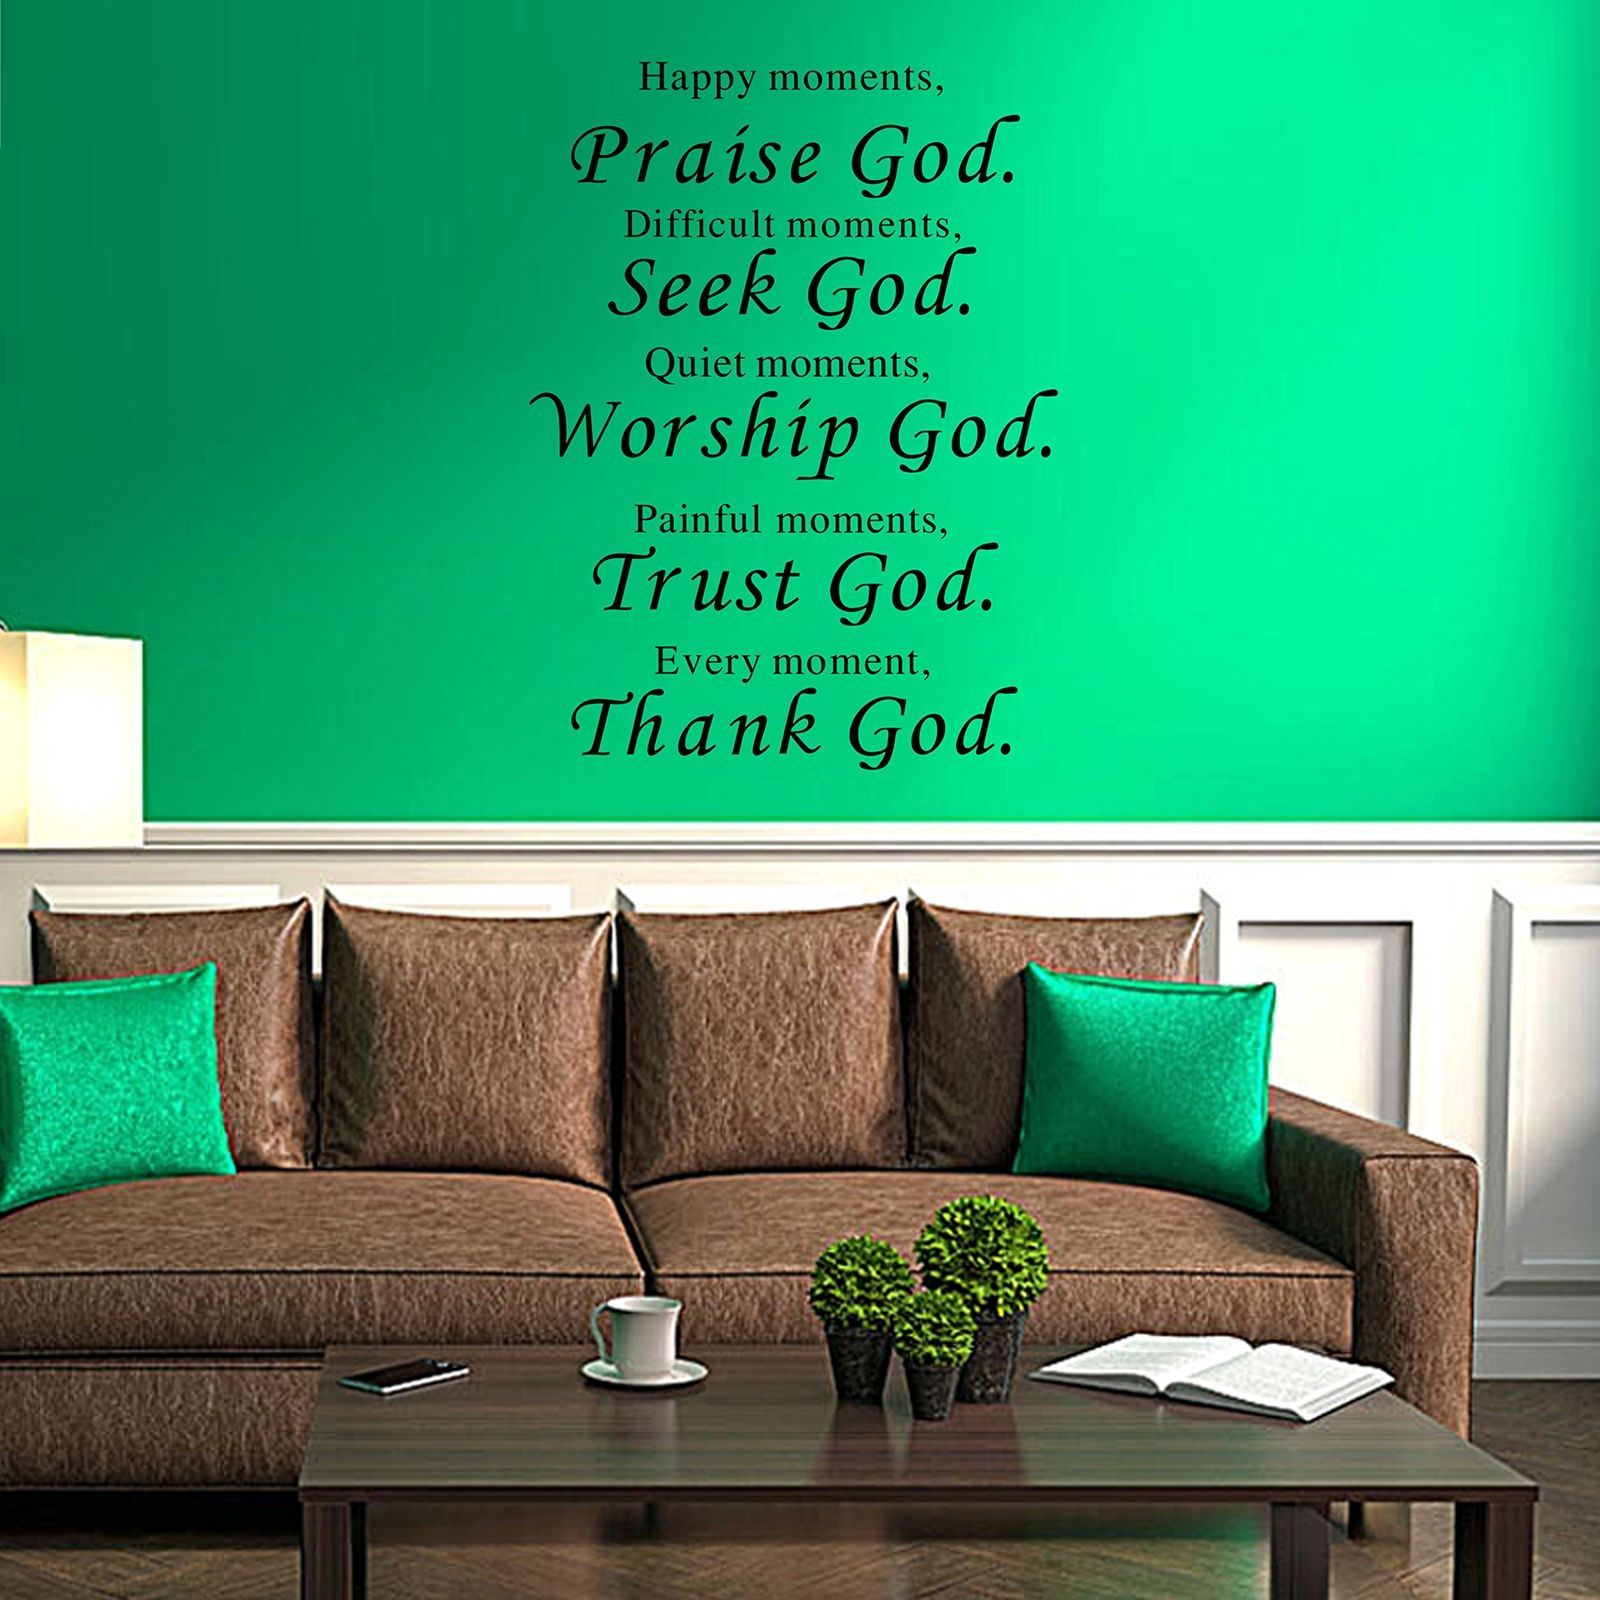 Removable vinyl decal wall sticker diy art mural home decor quote